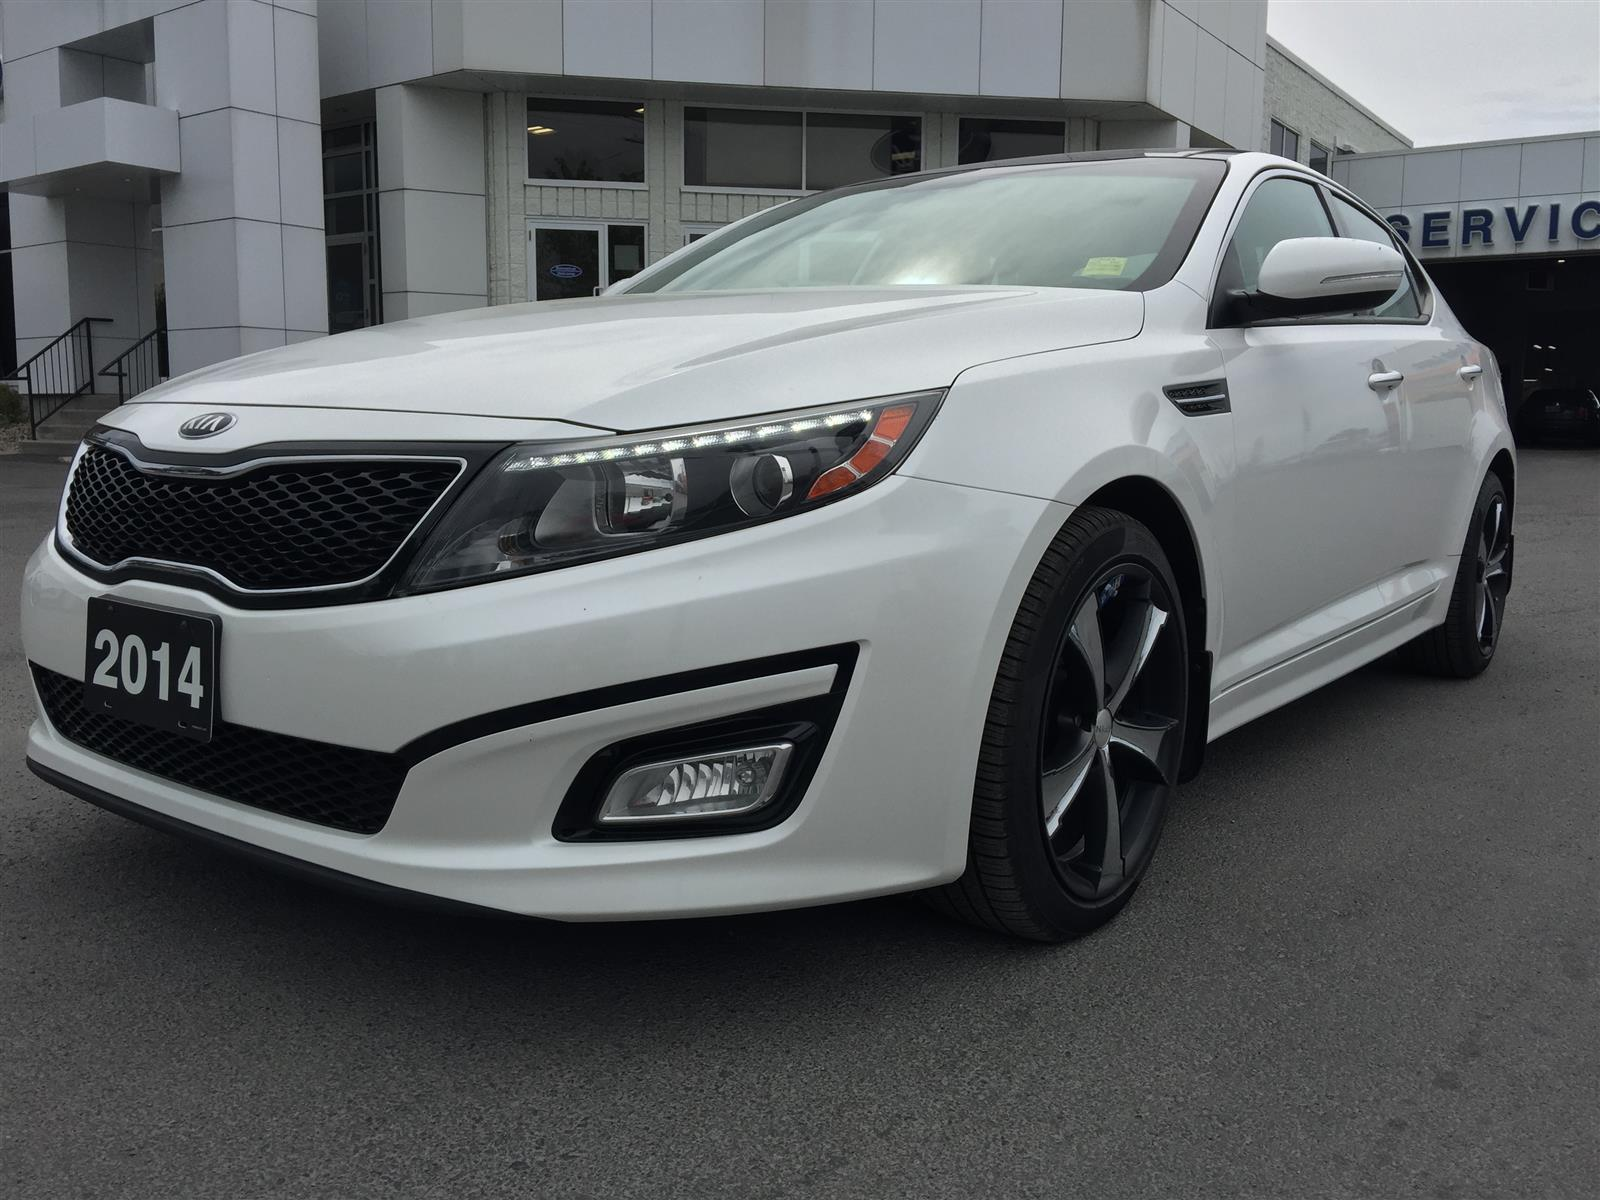 online sale copart silver lx title optima auto salvage kia boston on north auctions cert en ma left lot view in of carfinder